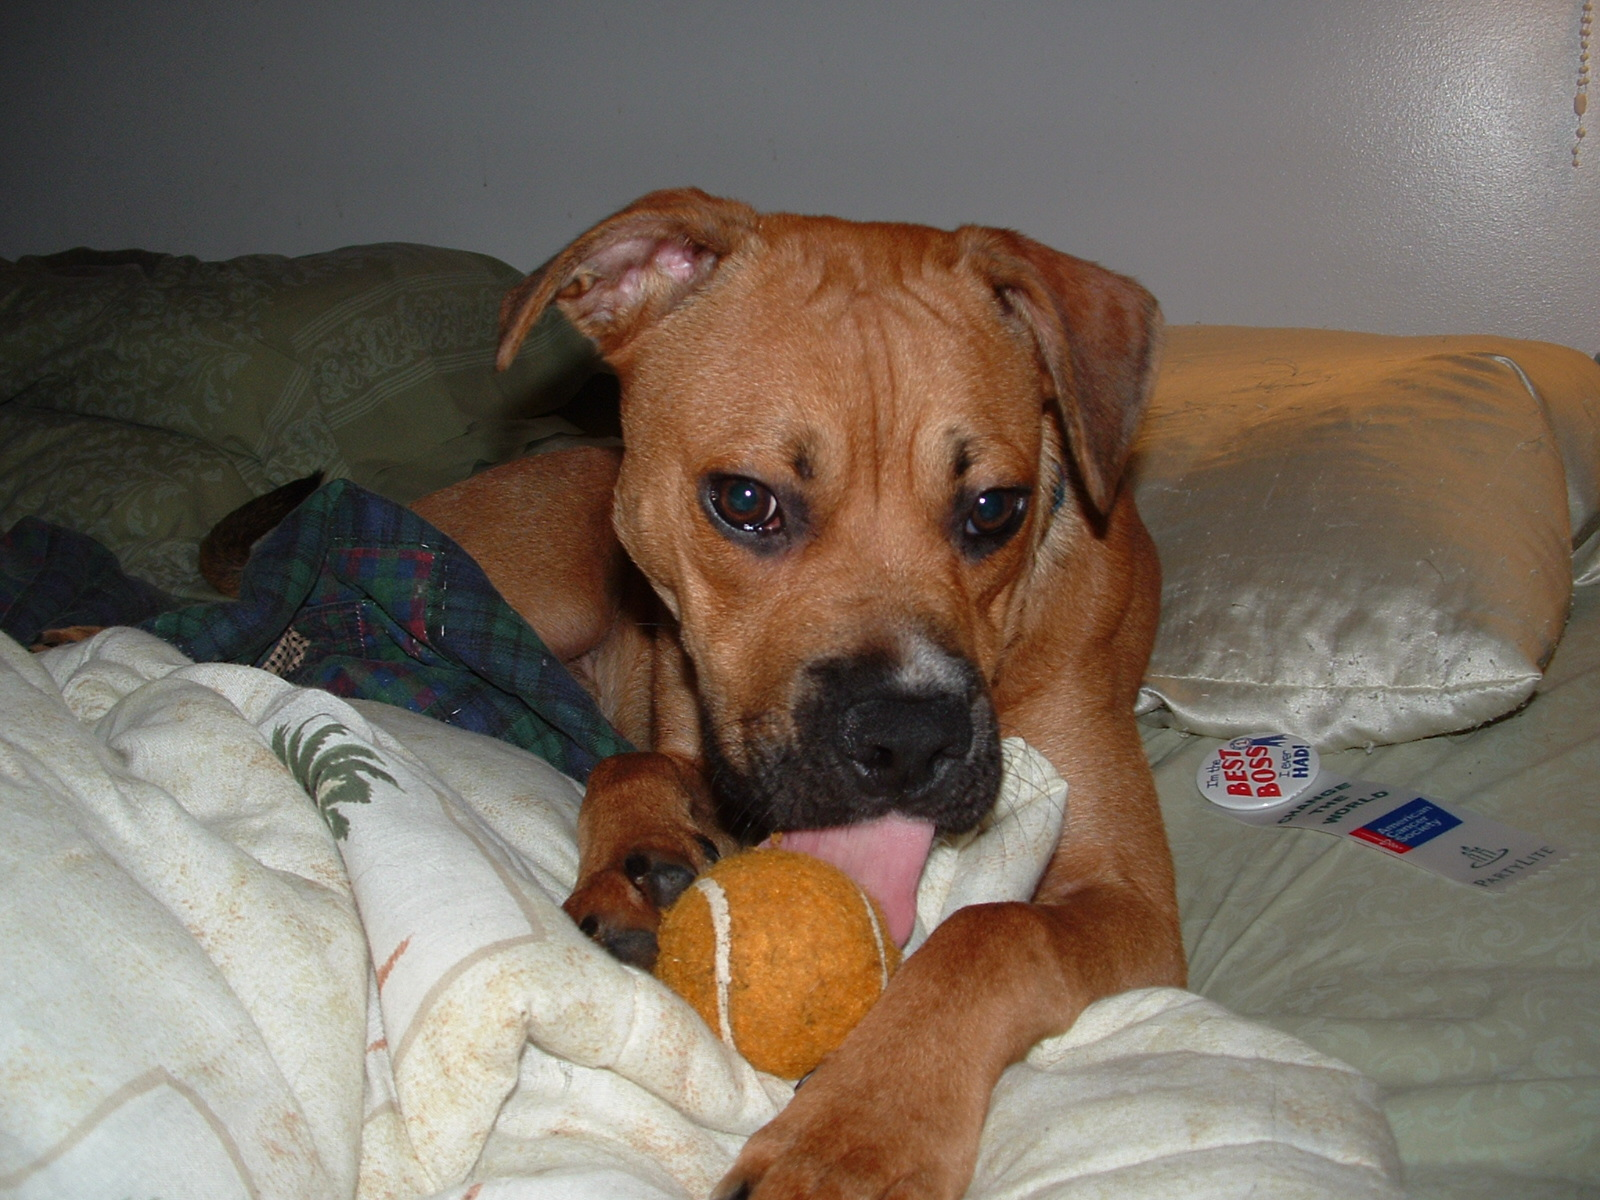 Bruno the boxer with tennis ball